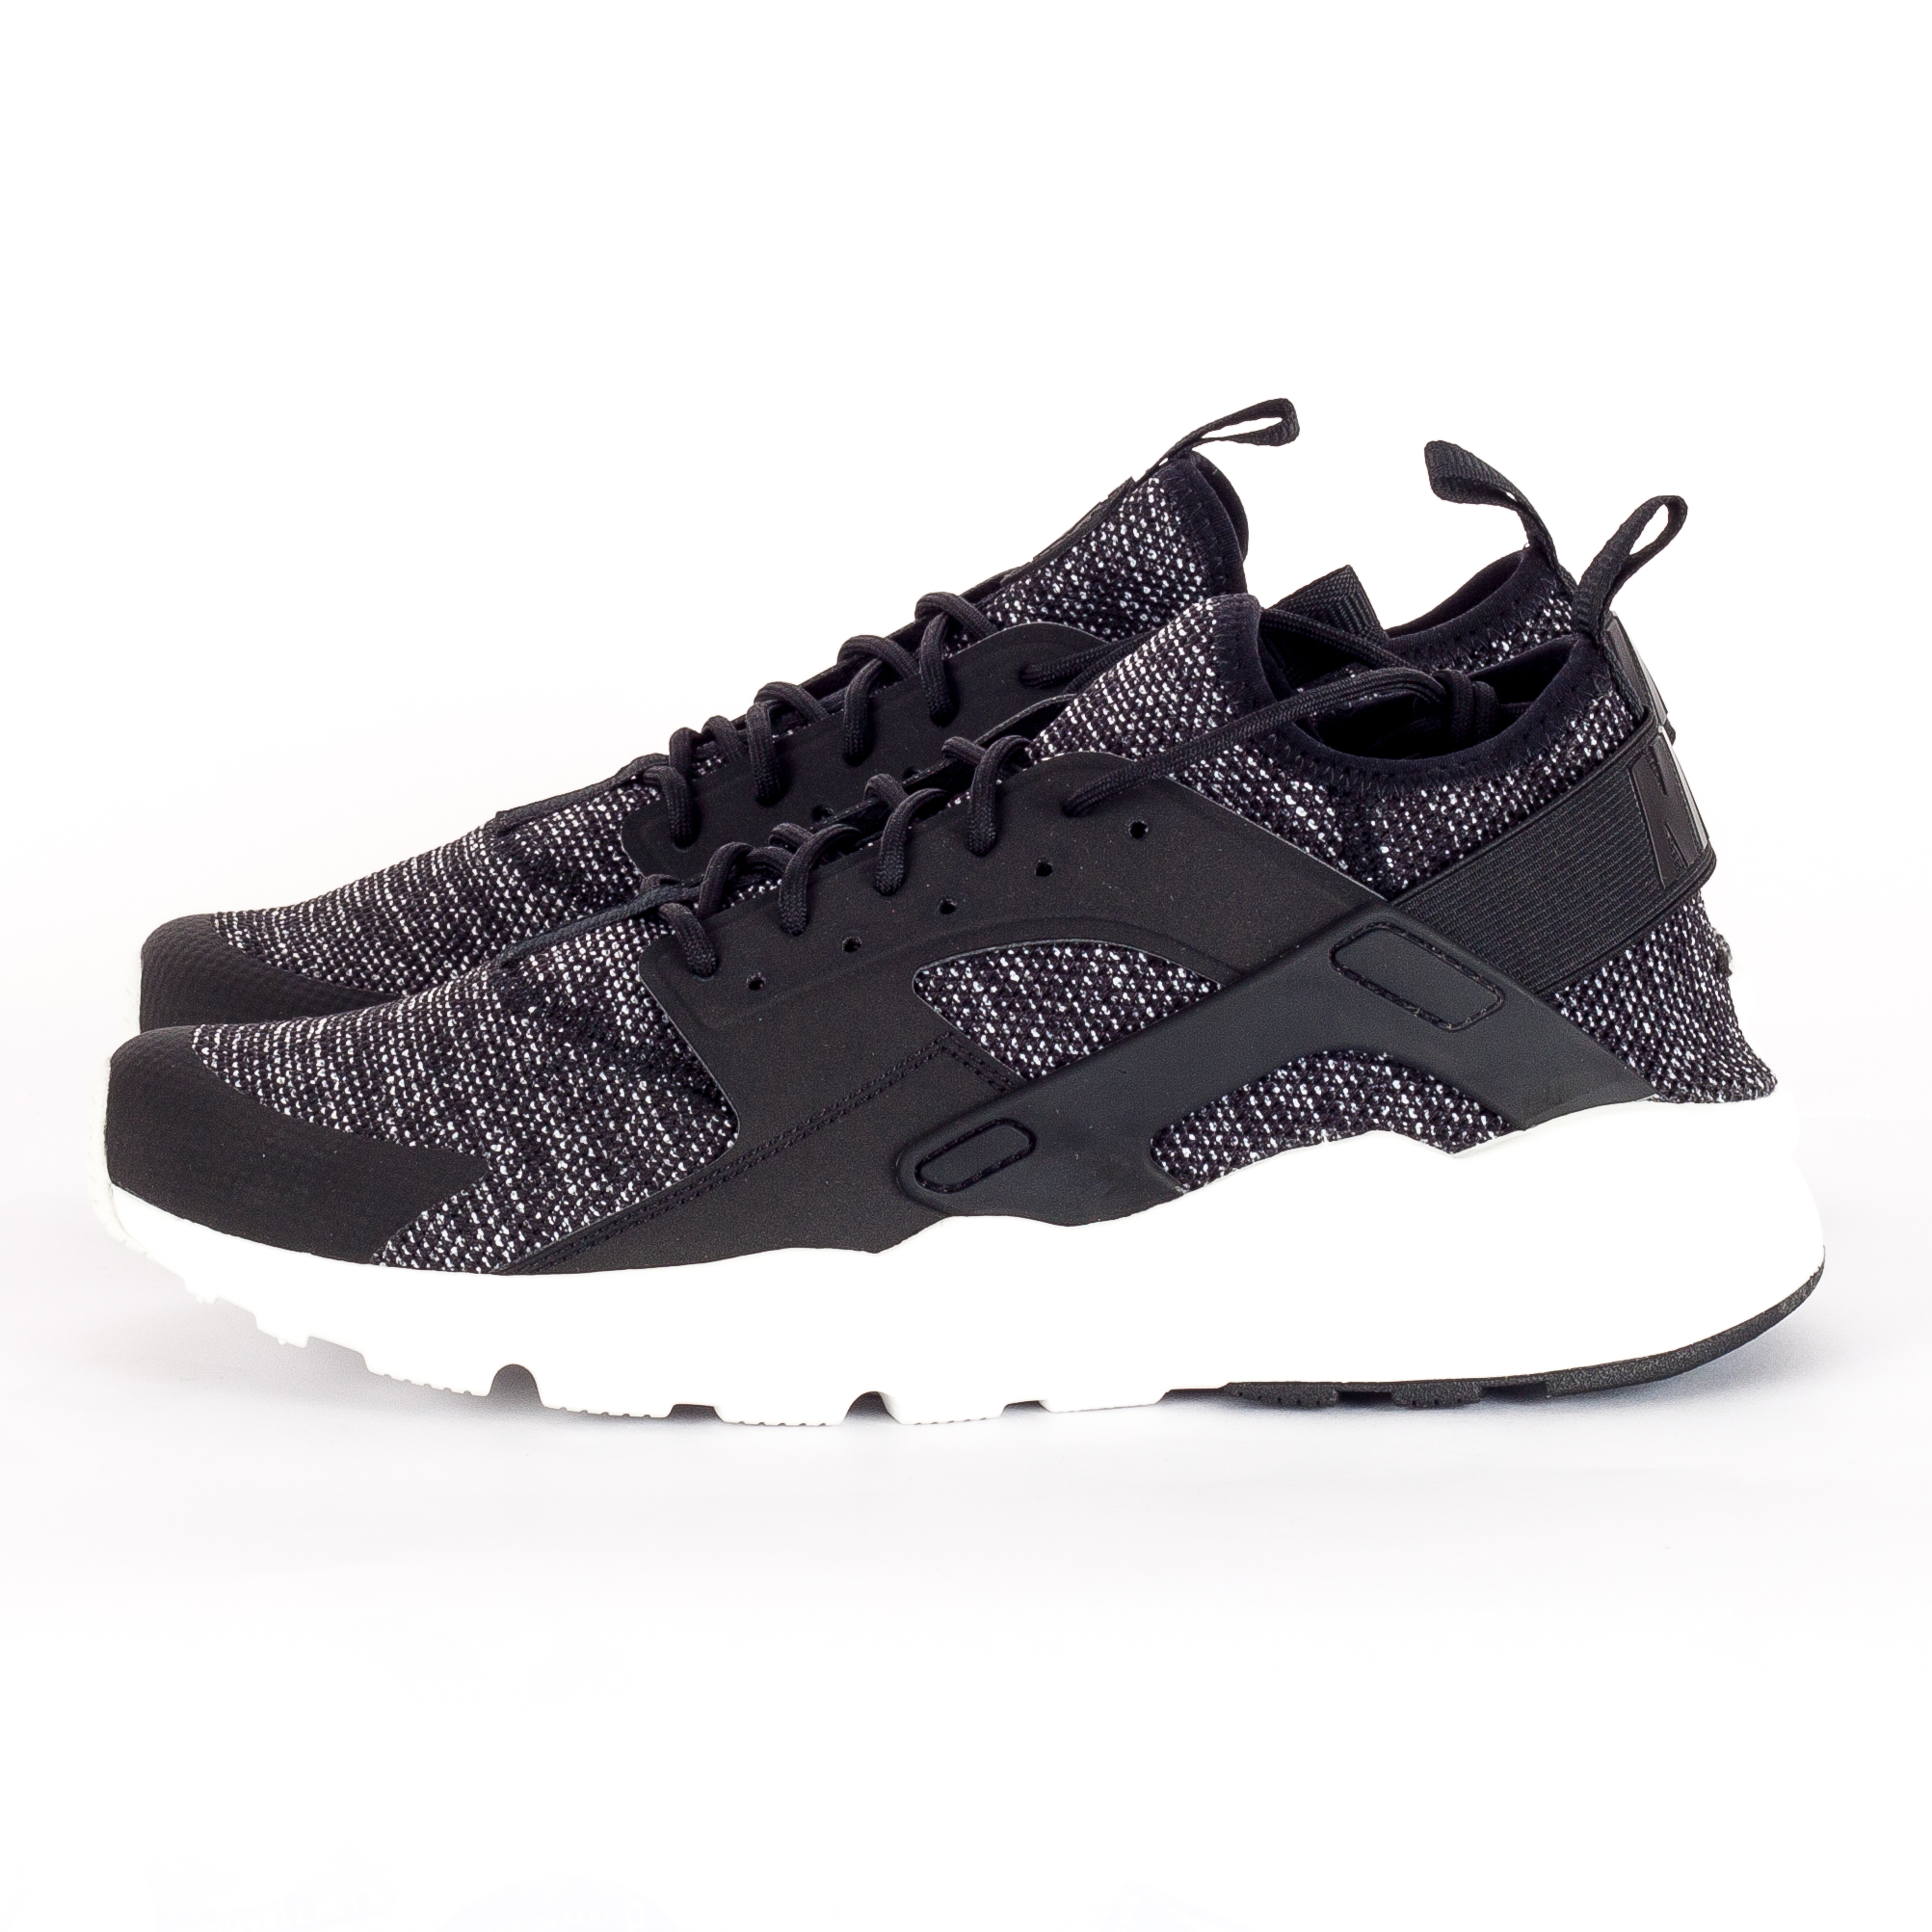 san francisco 95156 6cb4d NIKE Air Huarache Run Ultra Br